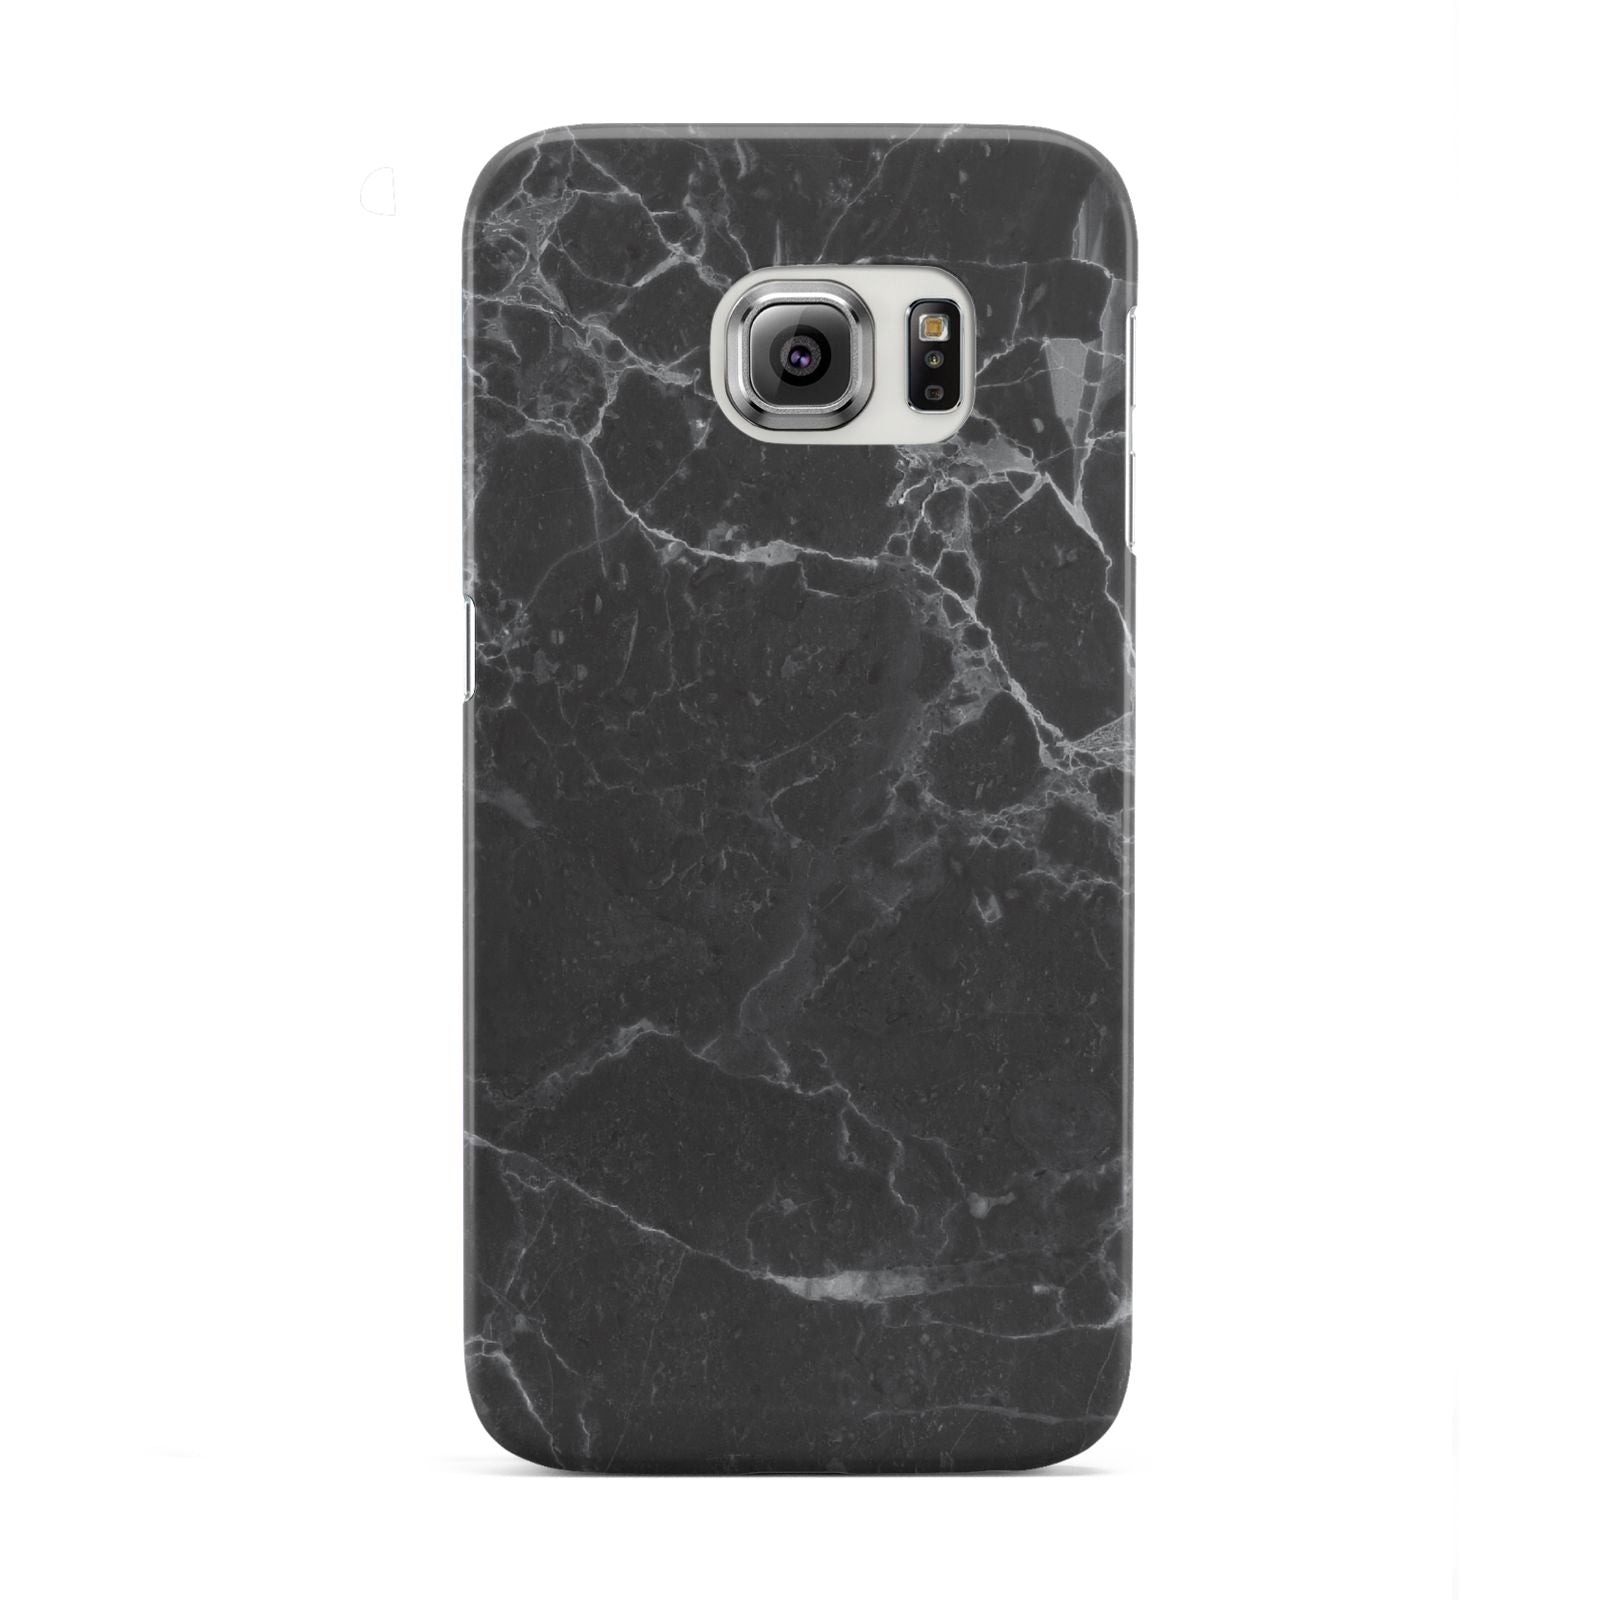 Faux Marble Effect Black Samsung Galaxy S6 Edge Case